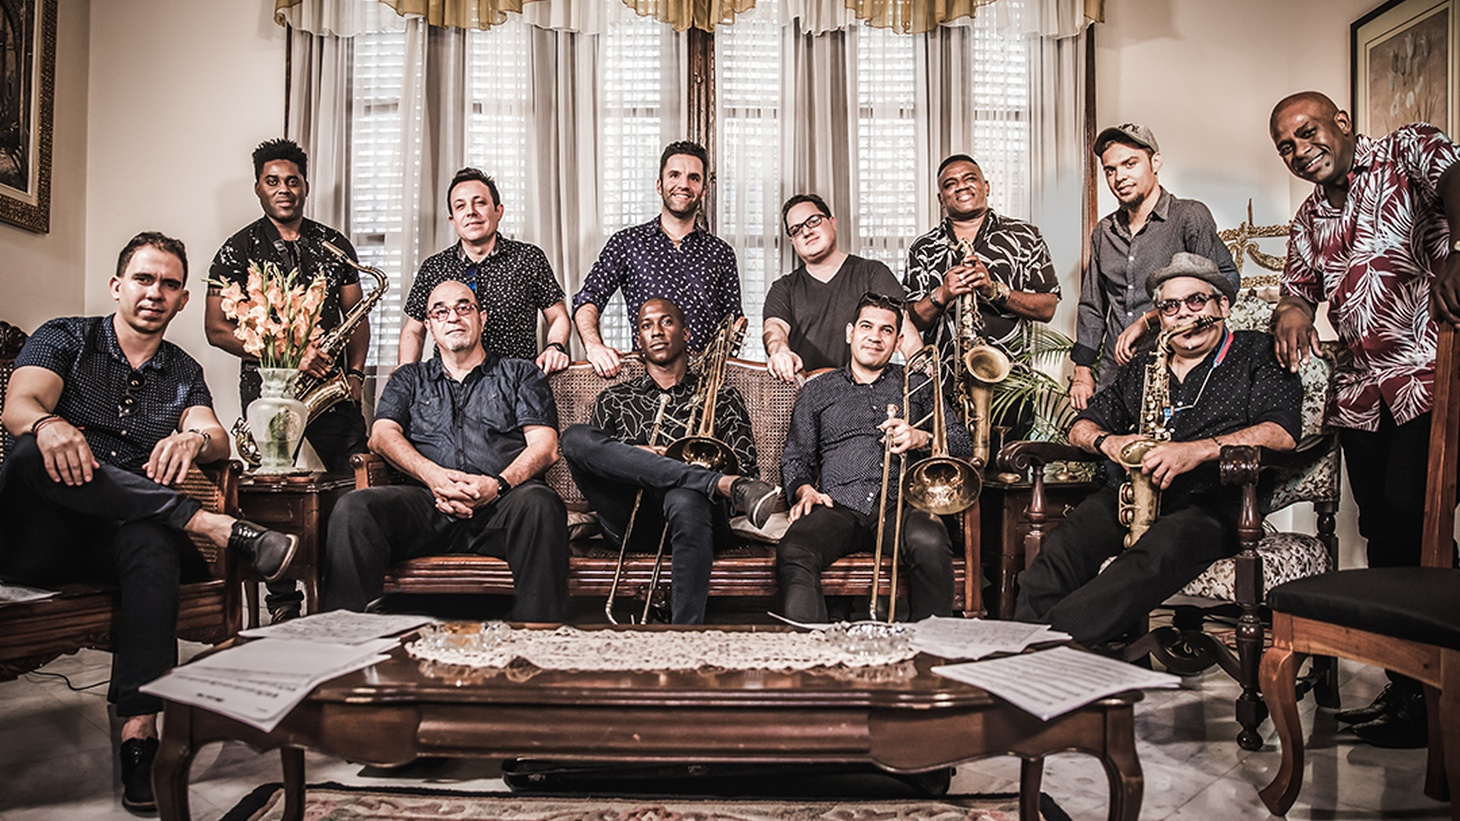 Orquesta Akokán is a deeply soulful mambo ensemble straight out of Cuba. Signed to famed Brooklyn label Daptone Records, the band's high energy music is both thrilling and timeless.